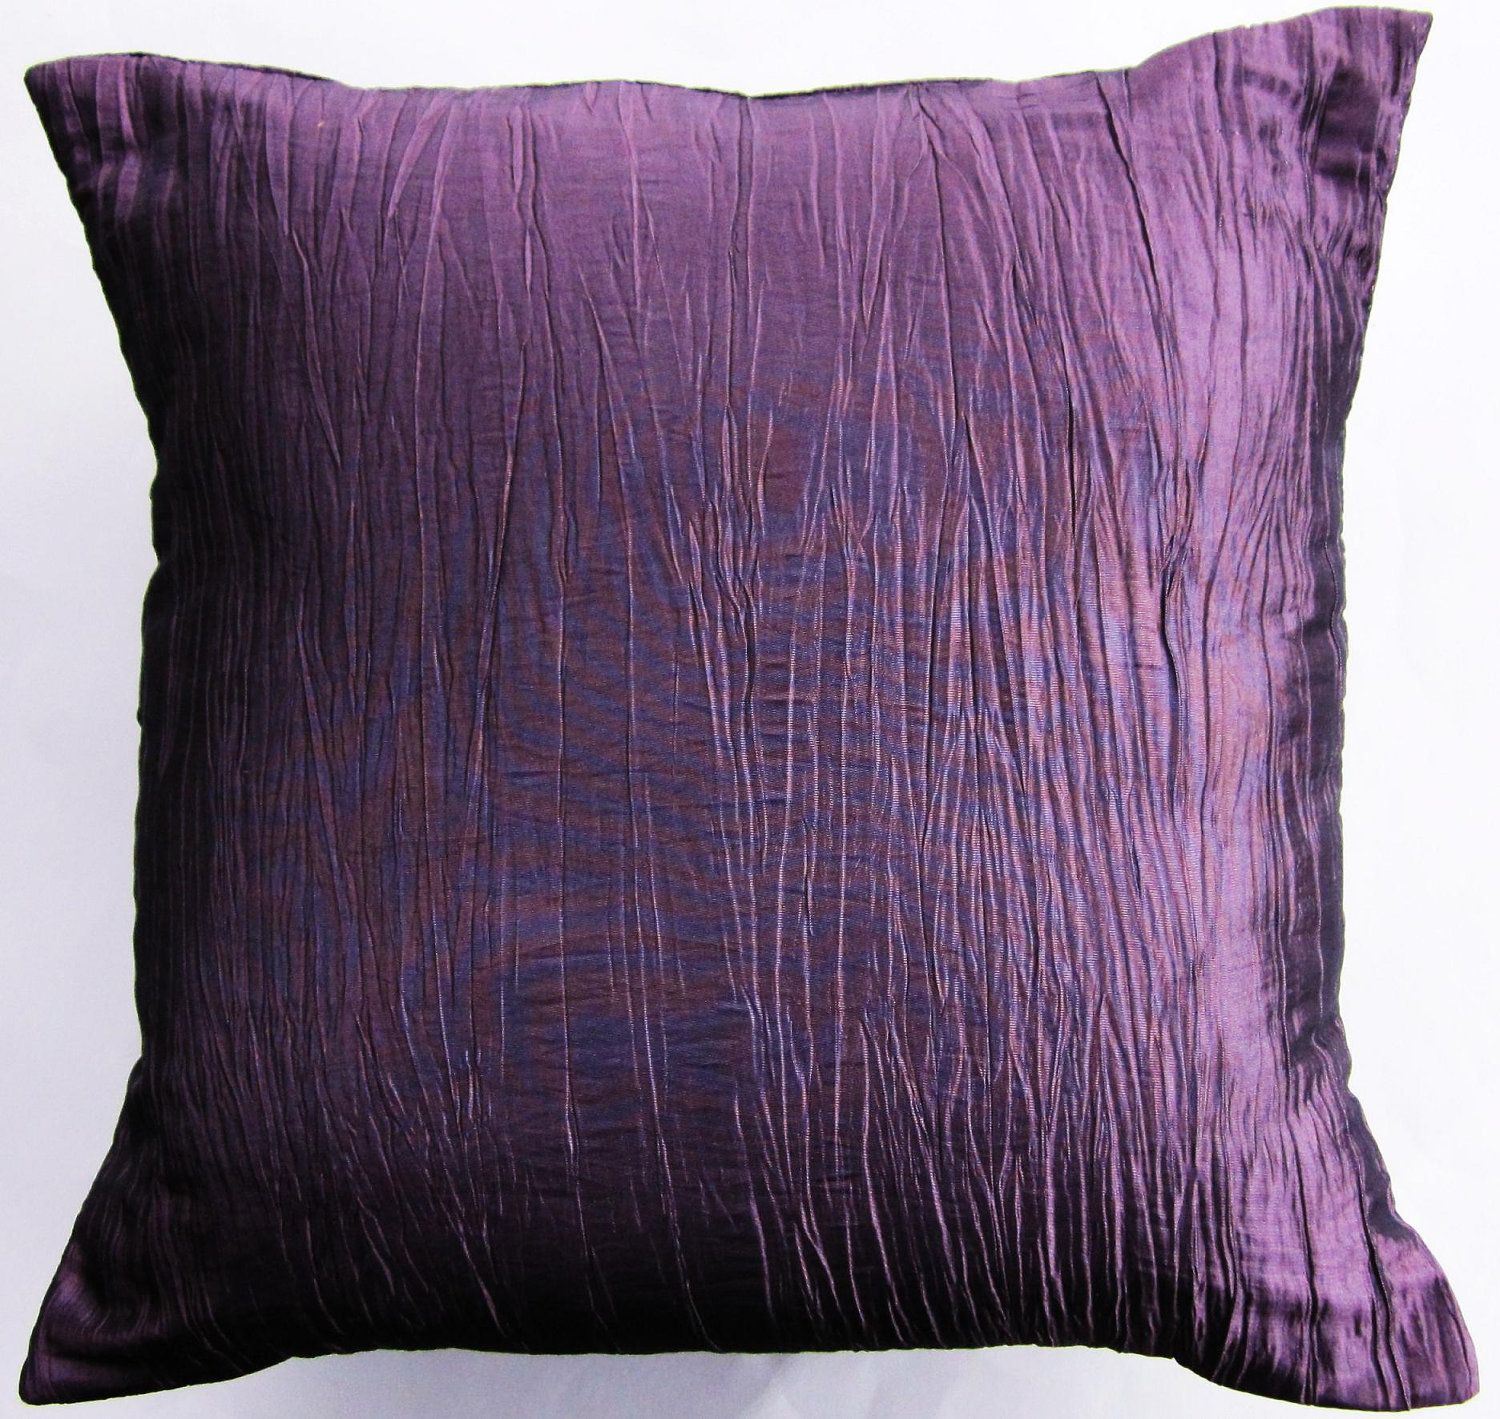 pillow satin purple d cor toss accent smocking cover home cushion throw sale pin pillows decorative canadian textured